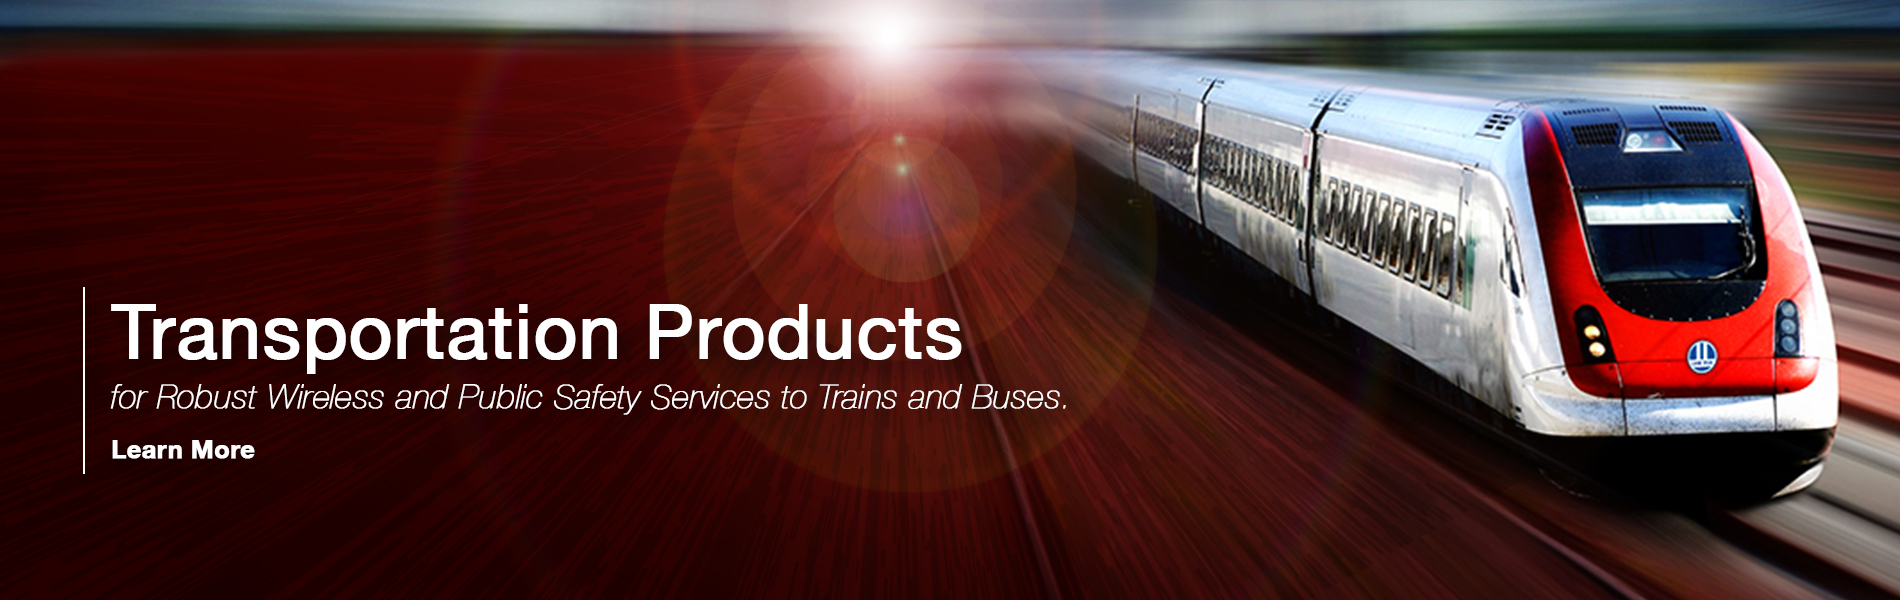 Transportation Products